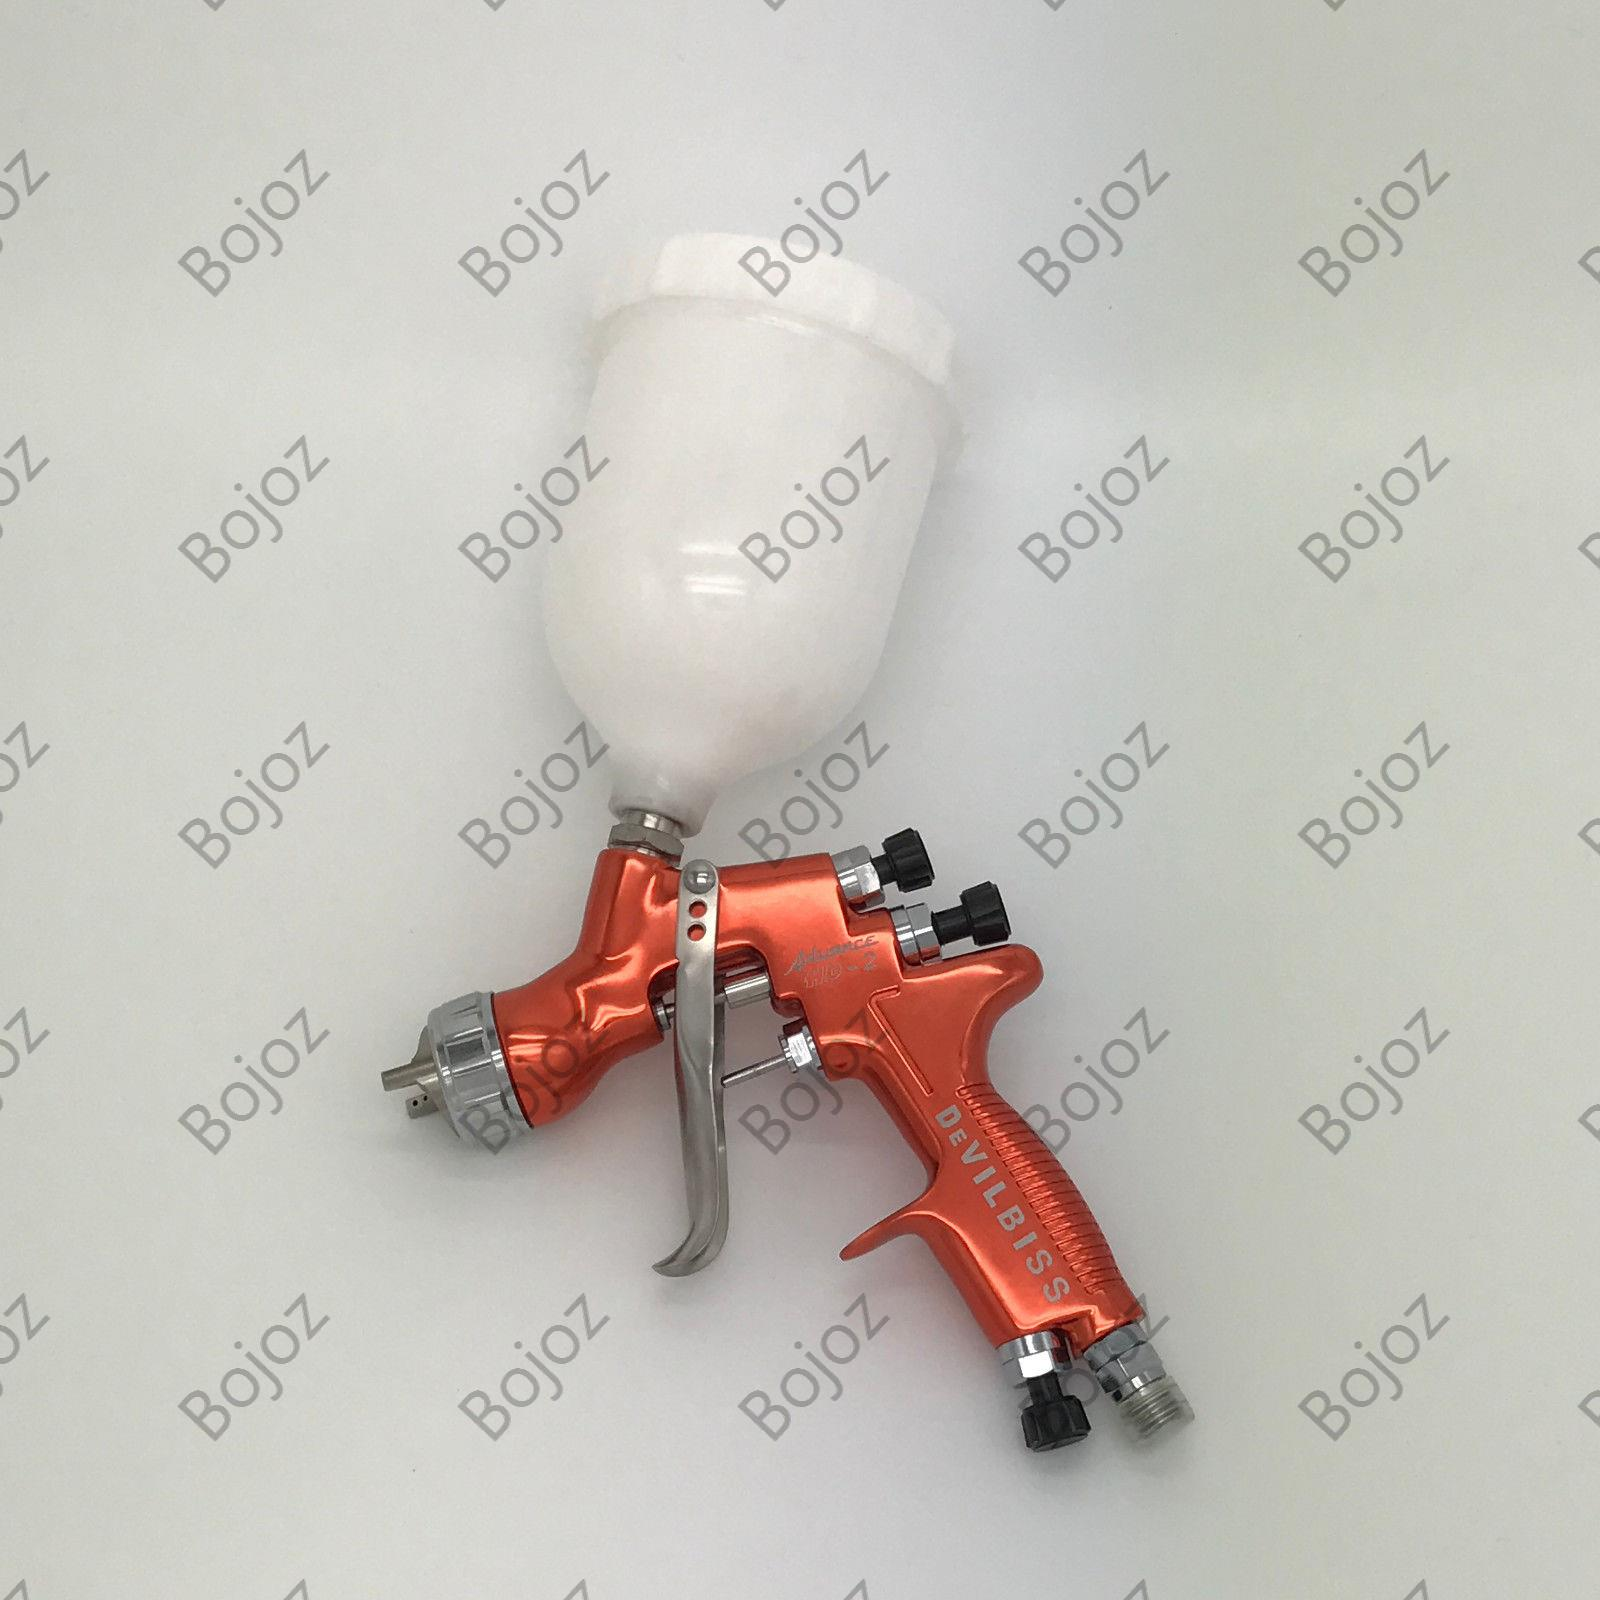 Free shipping Orange color HD-2 HVLP Spray Gun Gravity feed 1.3mm Topcoat Touch-Up Paint Cup for all Auto Paint  W/T 600ml CUP